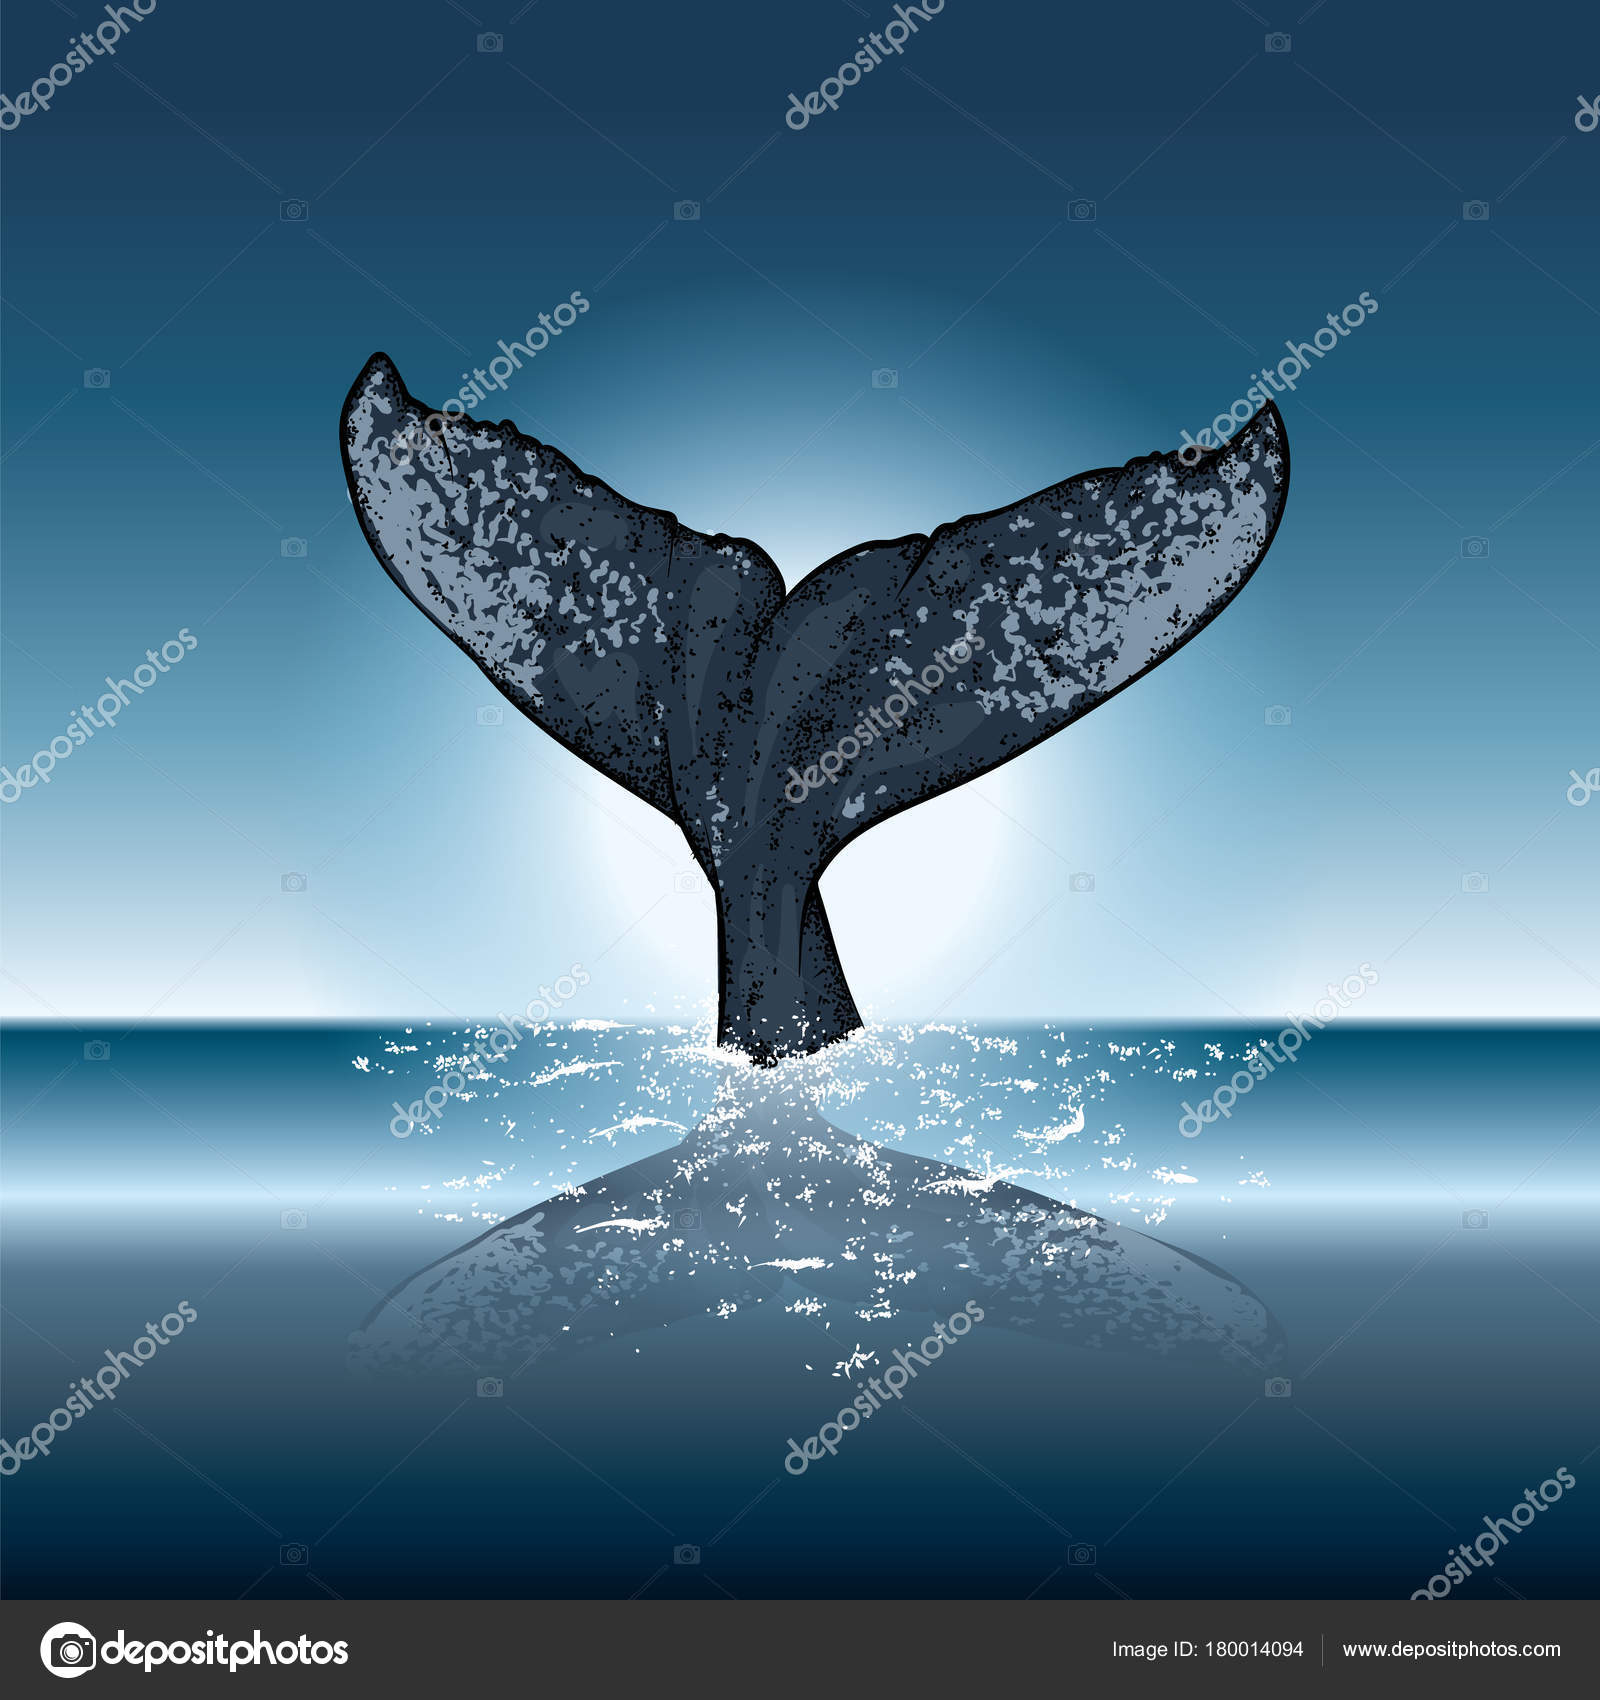 Whale Diving Water Vector Illustration Postcard Poster Print Clothes